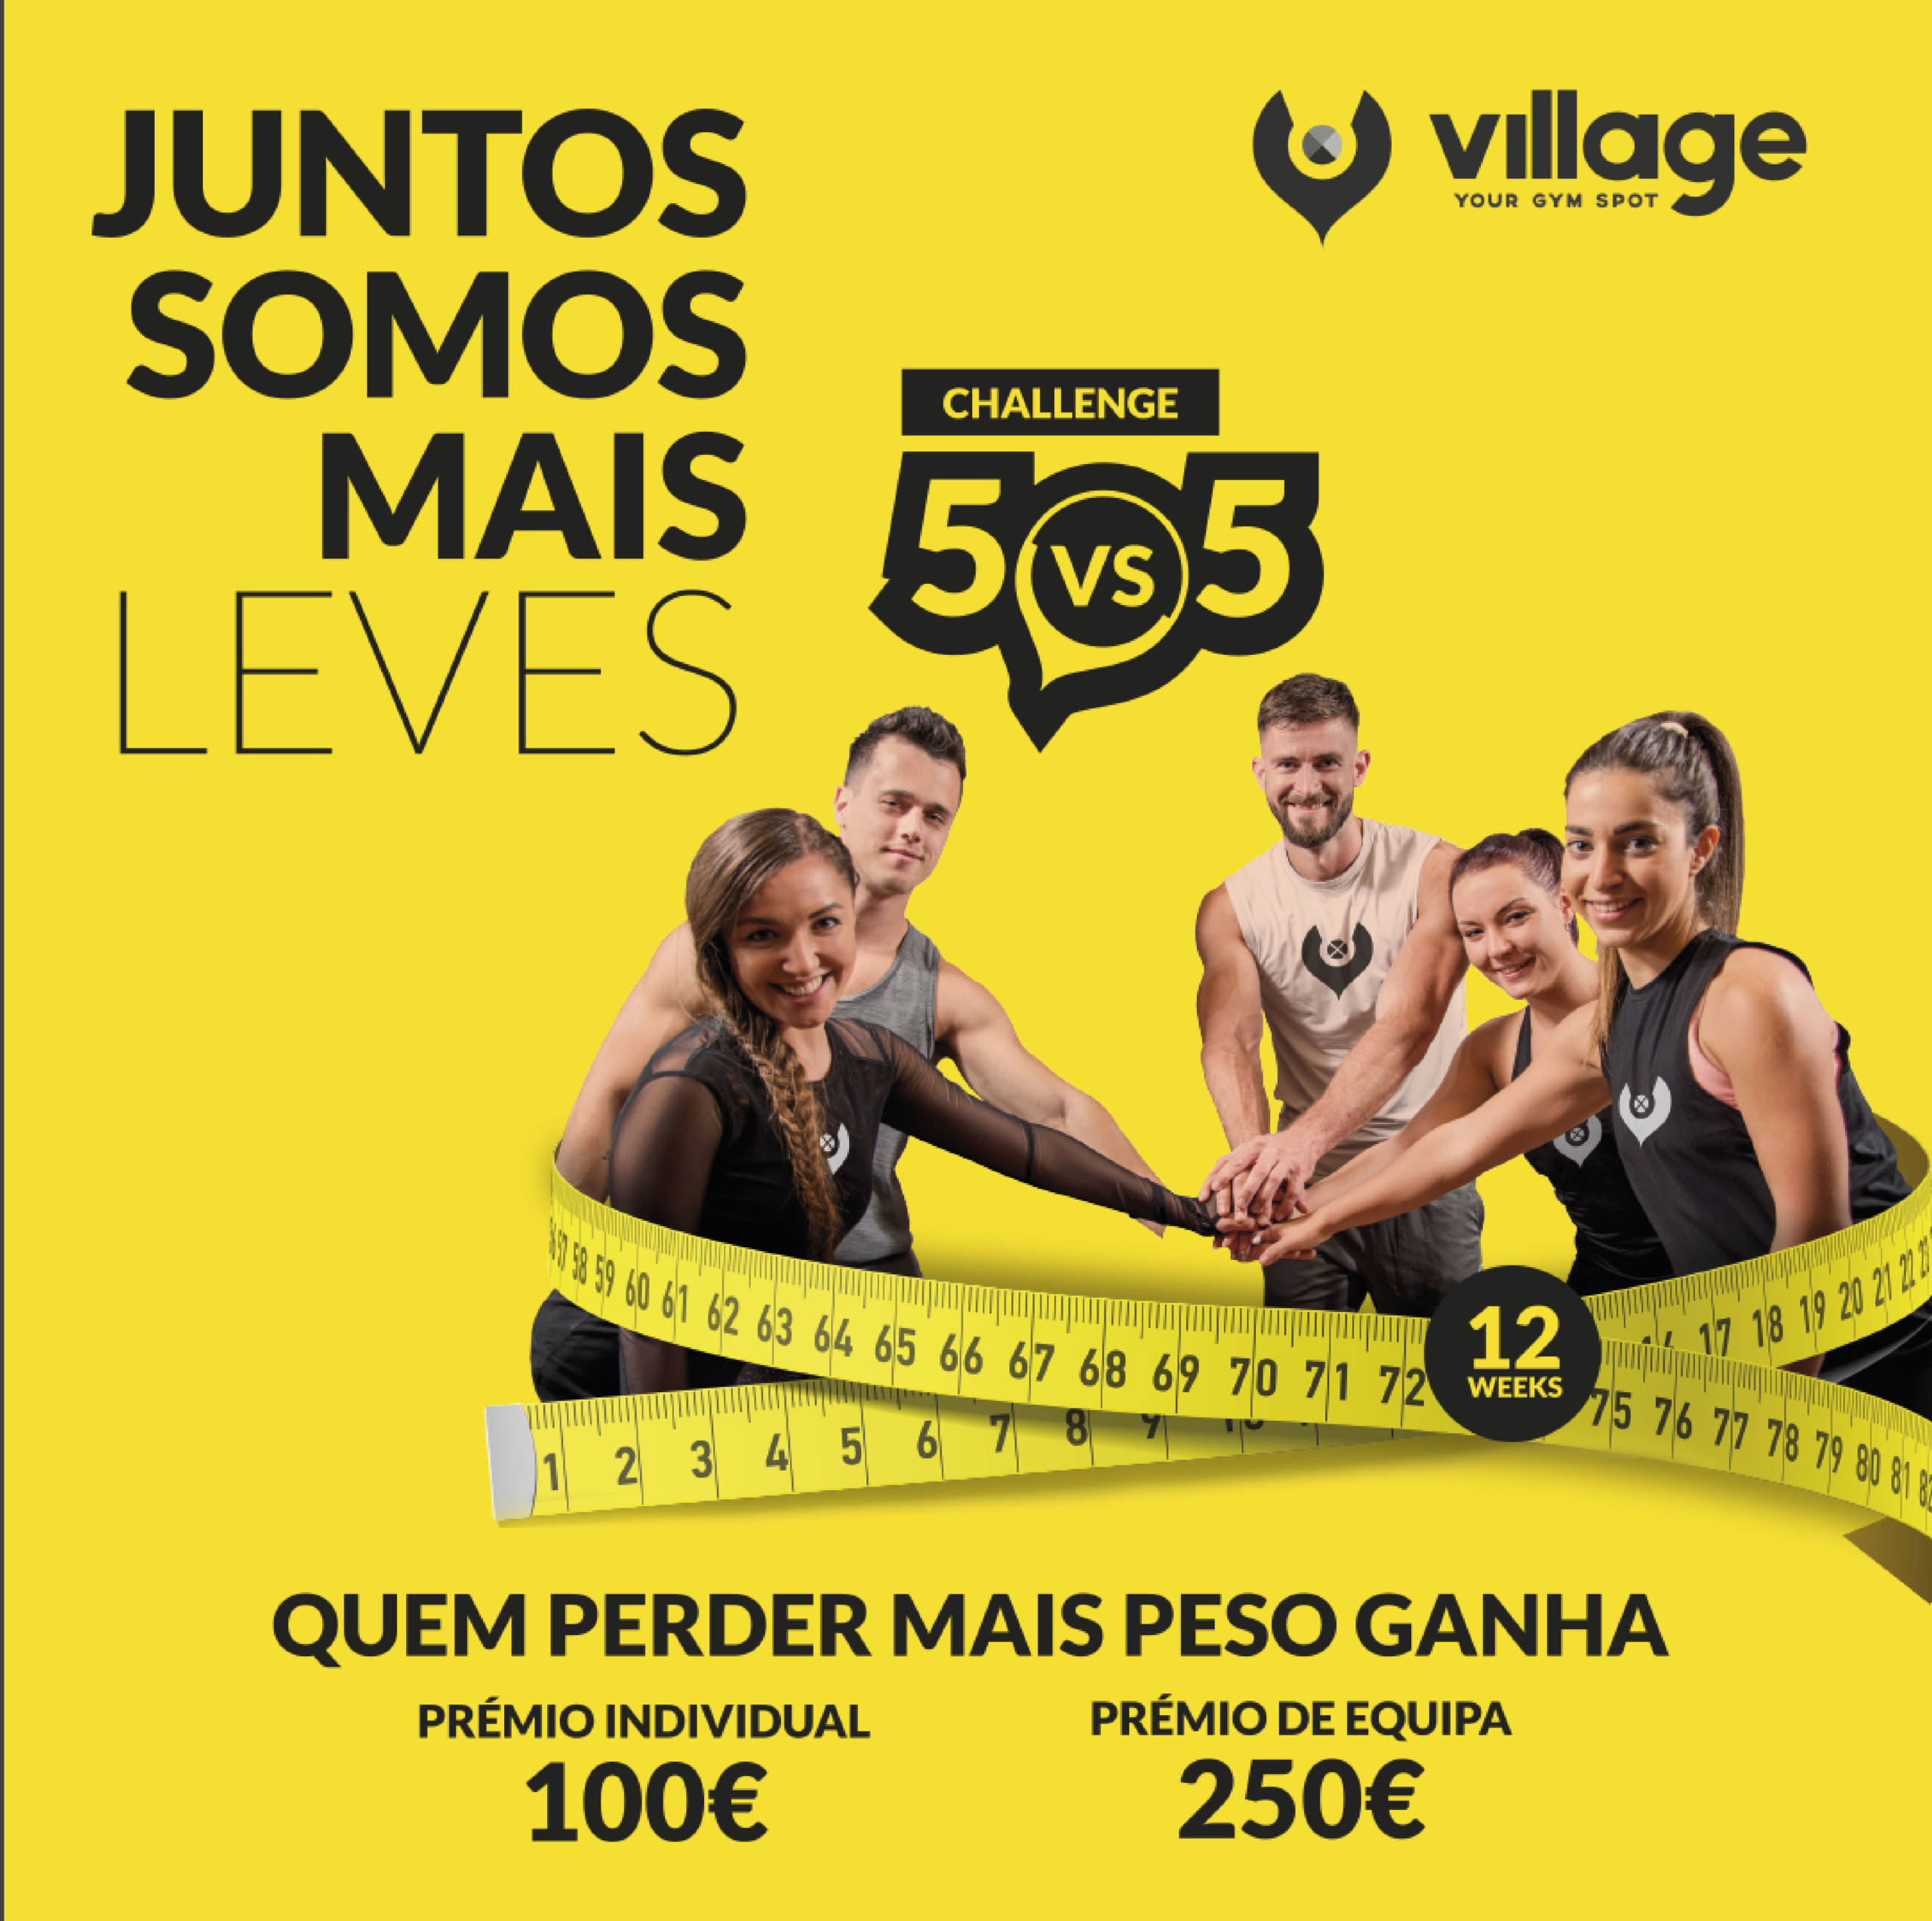 Village_juntossomosmaisleves